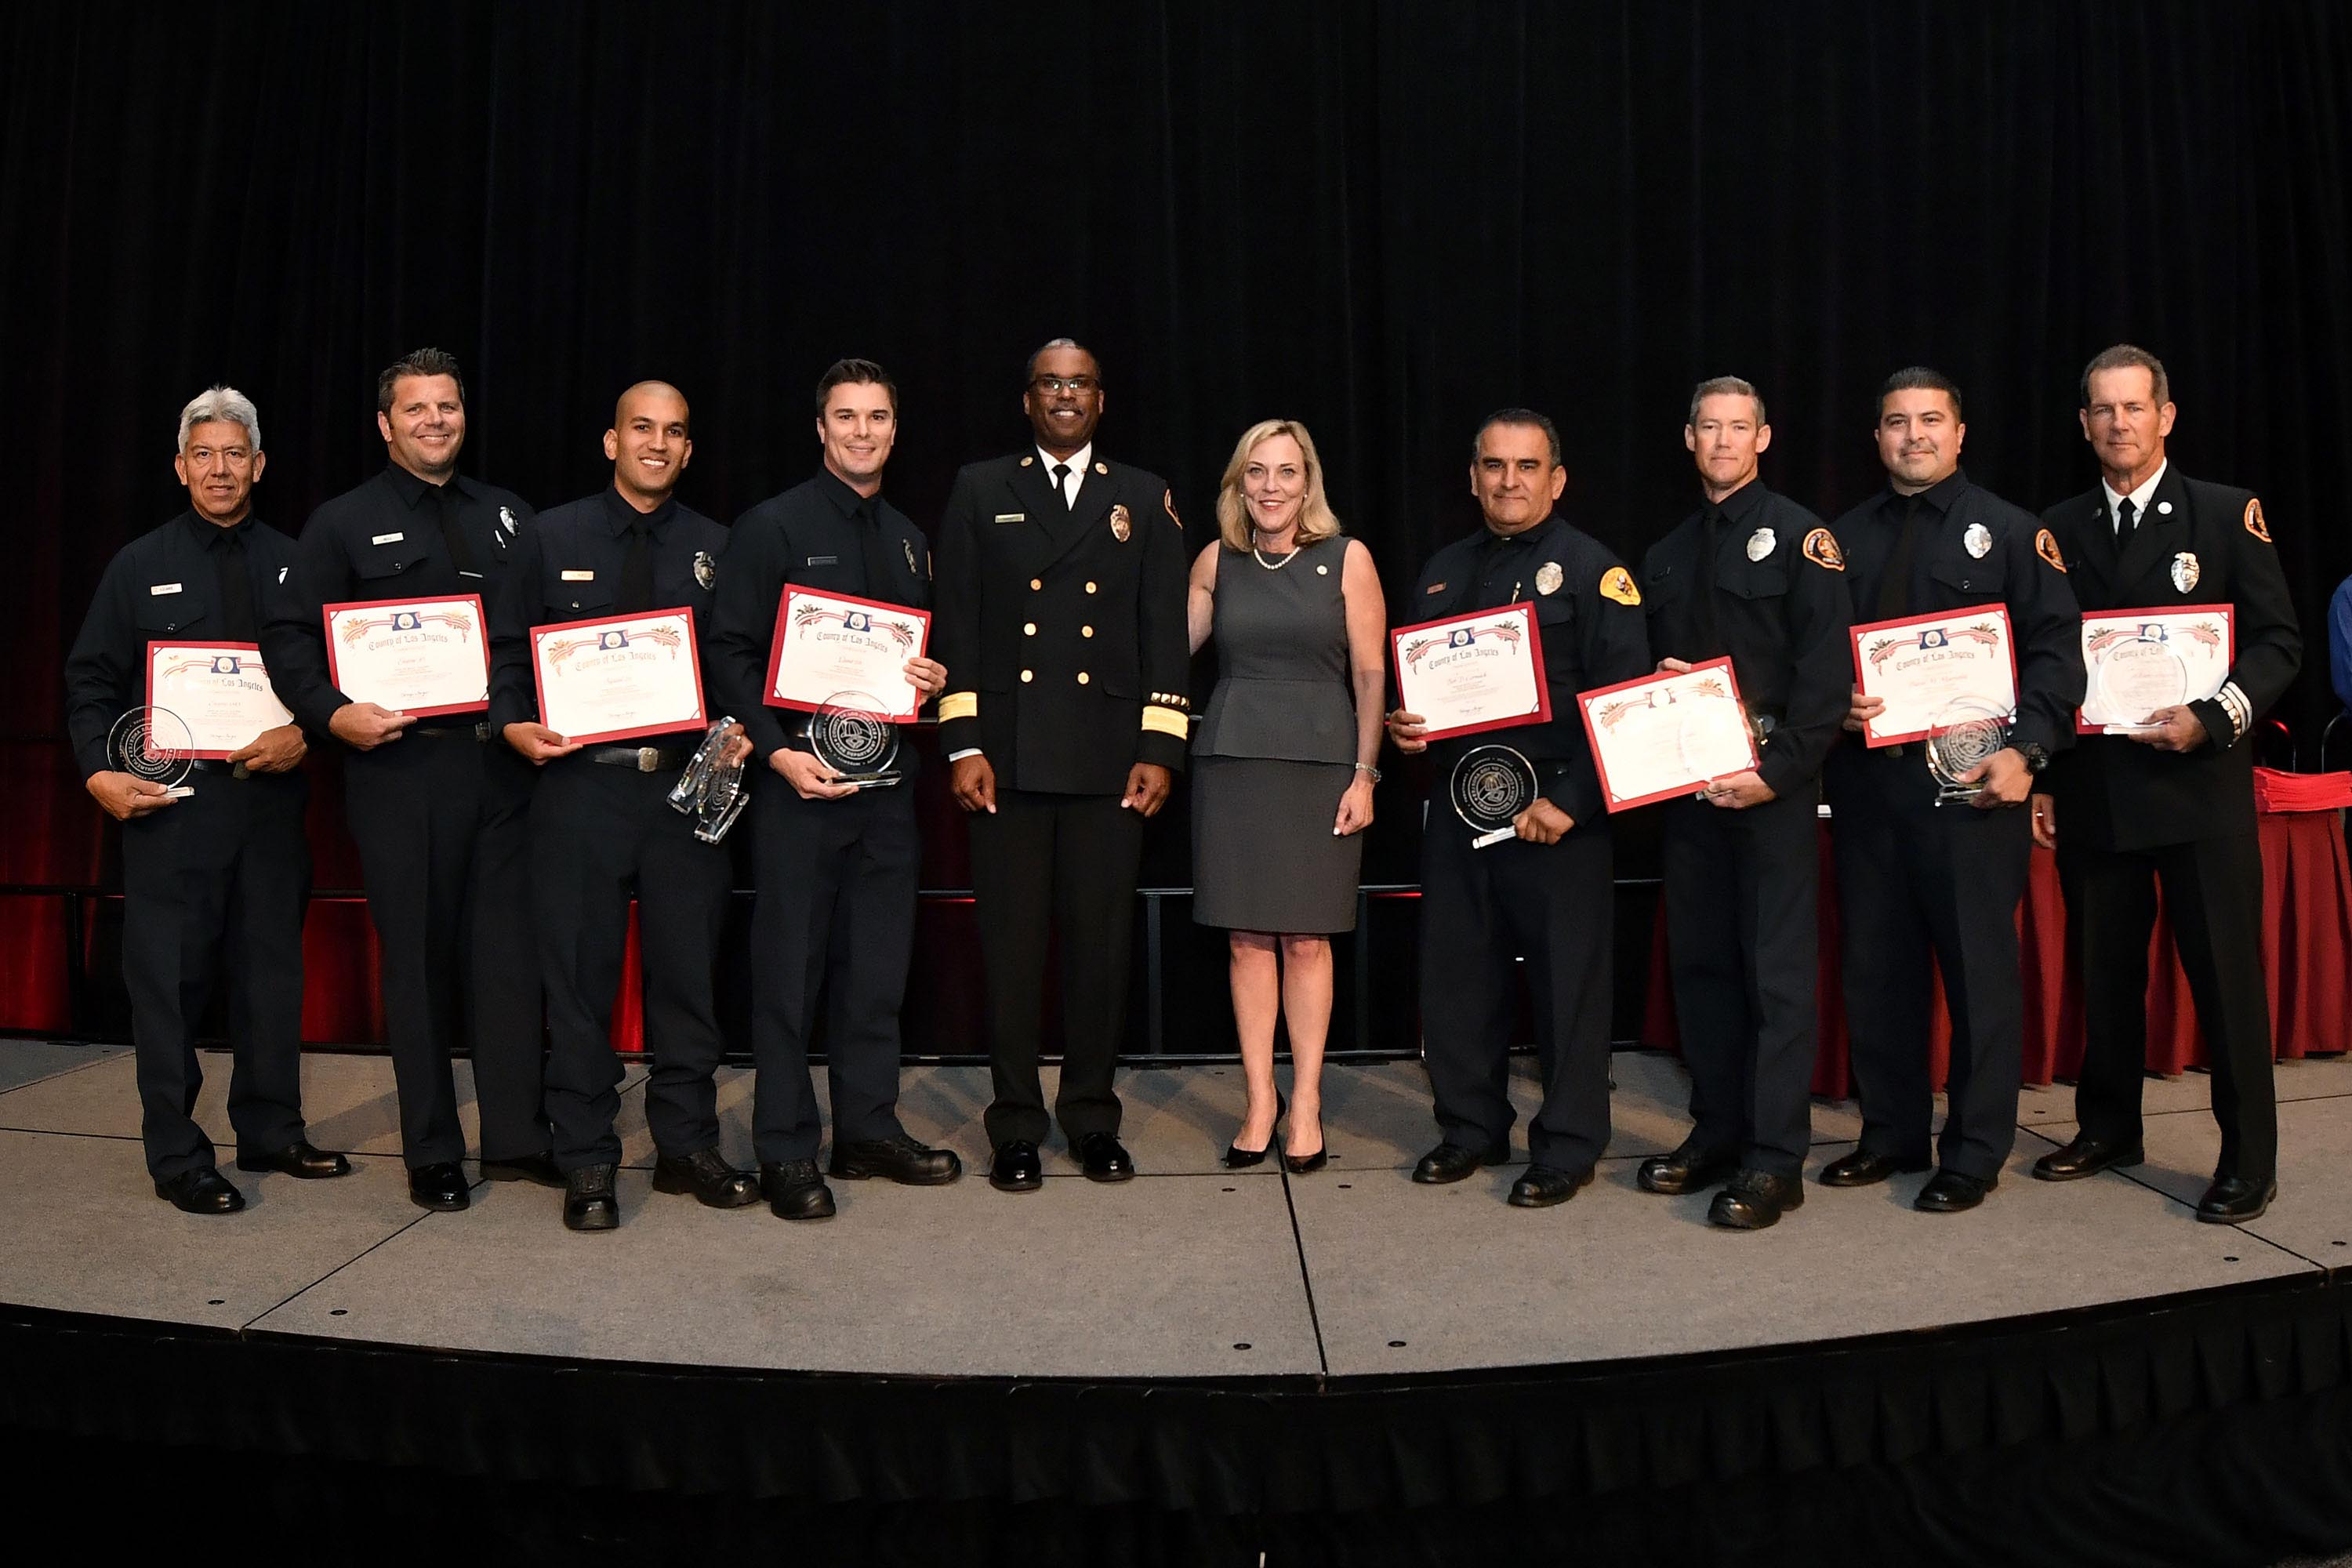 District 5 – Supervisor Kathryn Barger<br>  <b>May 10, 2017 - L.A. County Fire Medal of Valor Awards.</b><br> <i>Photo by Martin Zamora / Board of Supervisors</i>